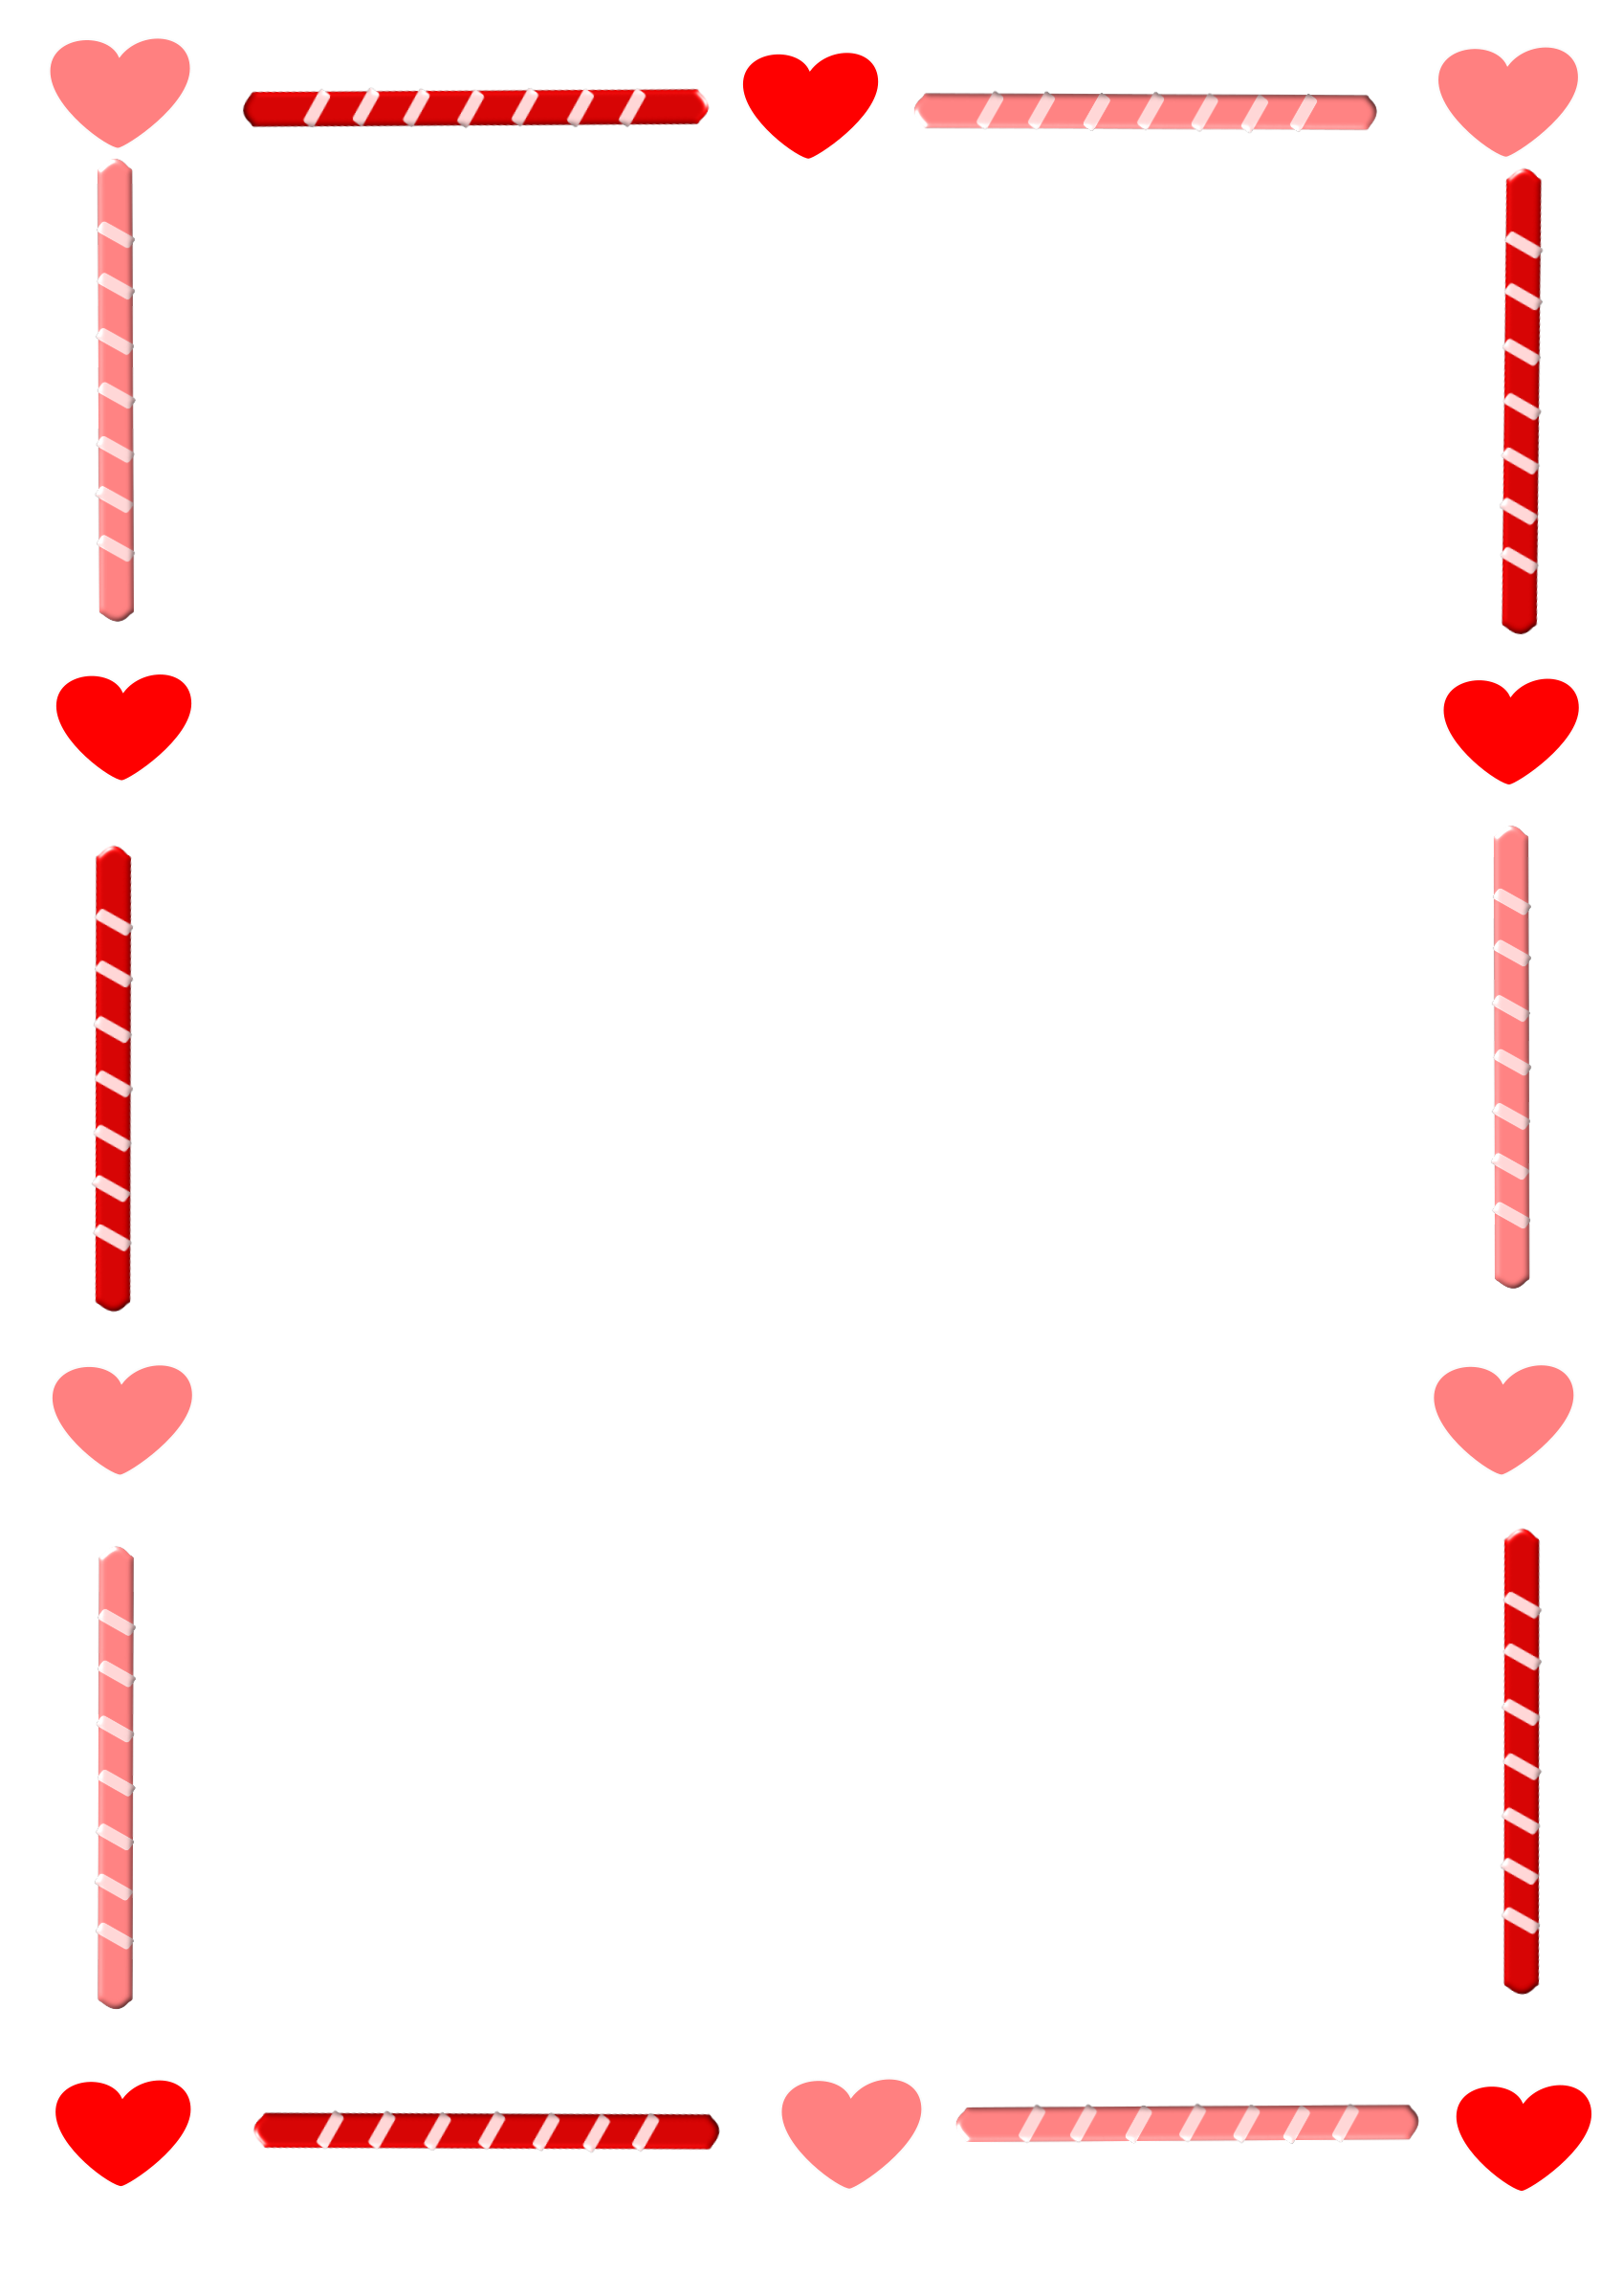 Heart and Candy Border by cuteeverything